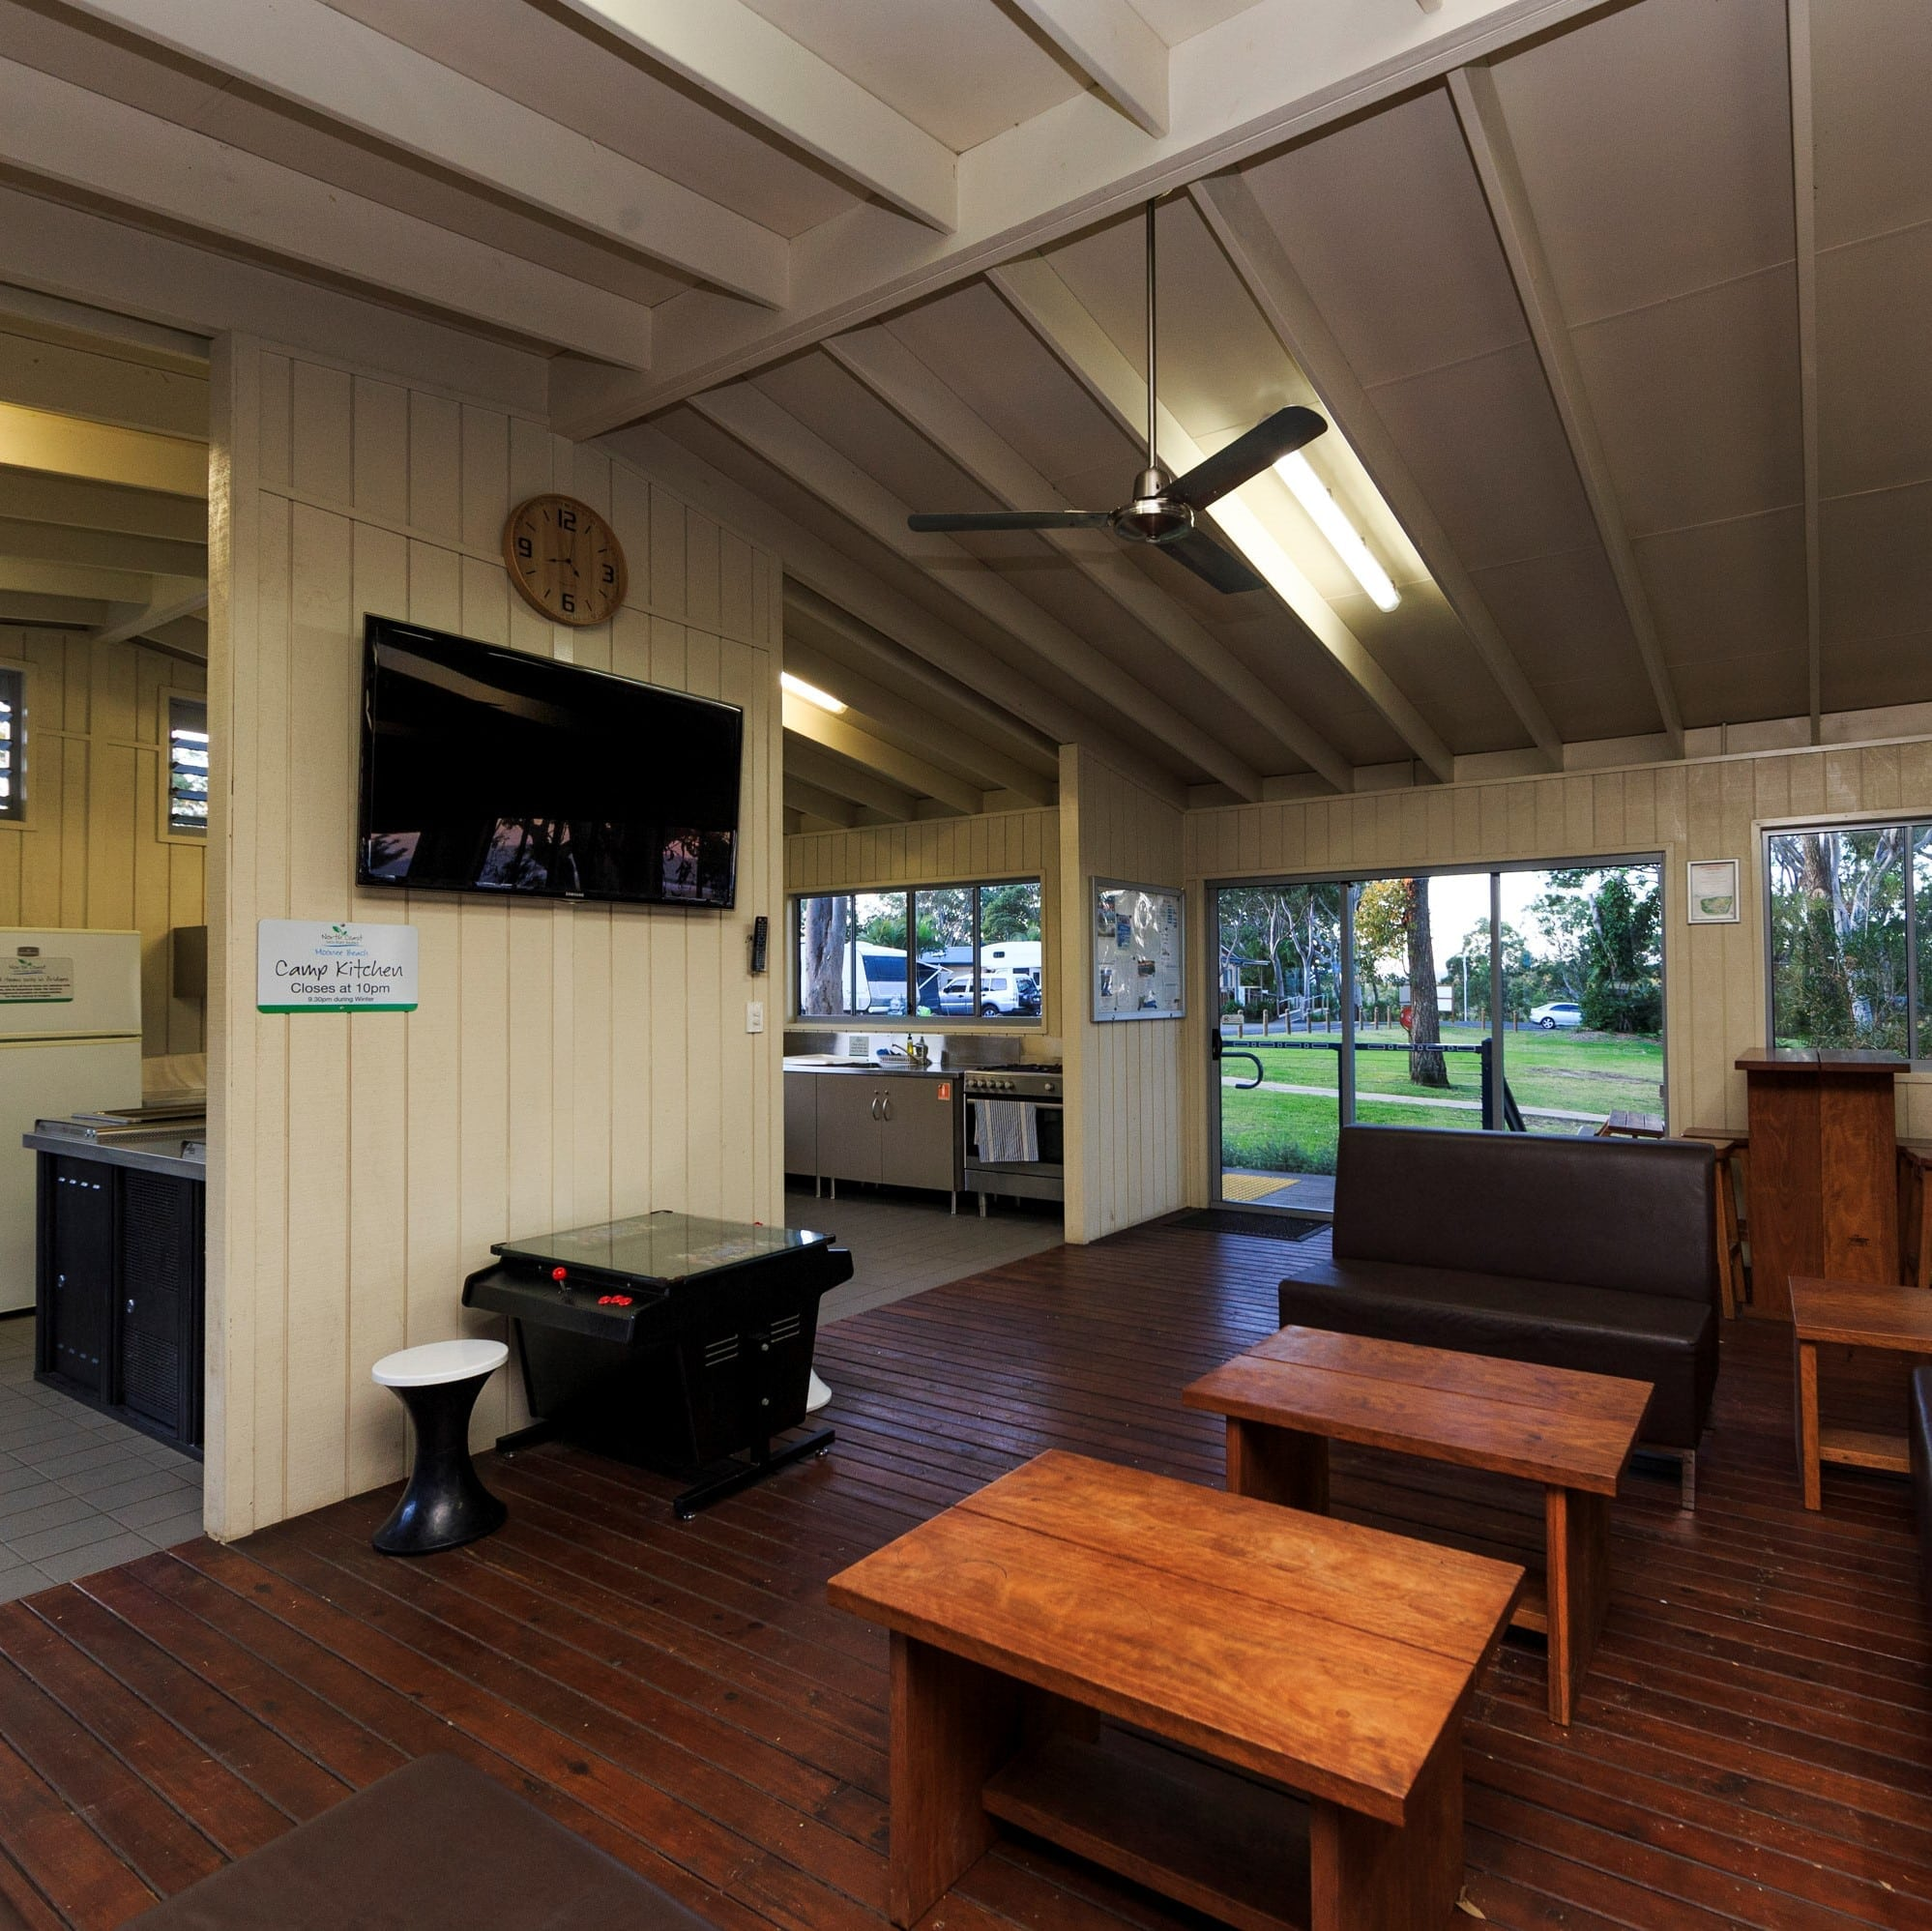 Image of the Reflections Holiday Parks Moonee Beach Camp Kitchen